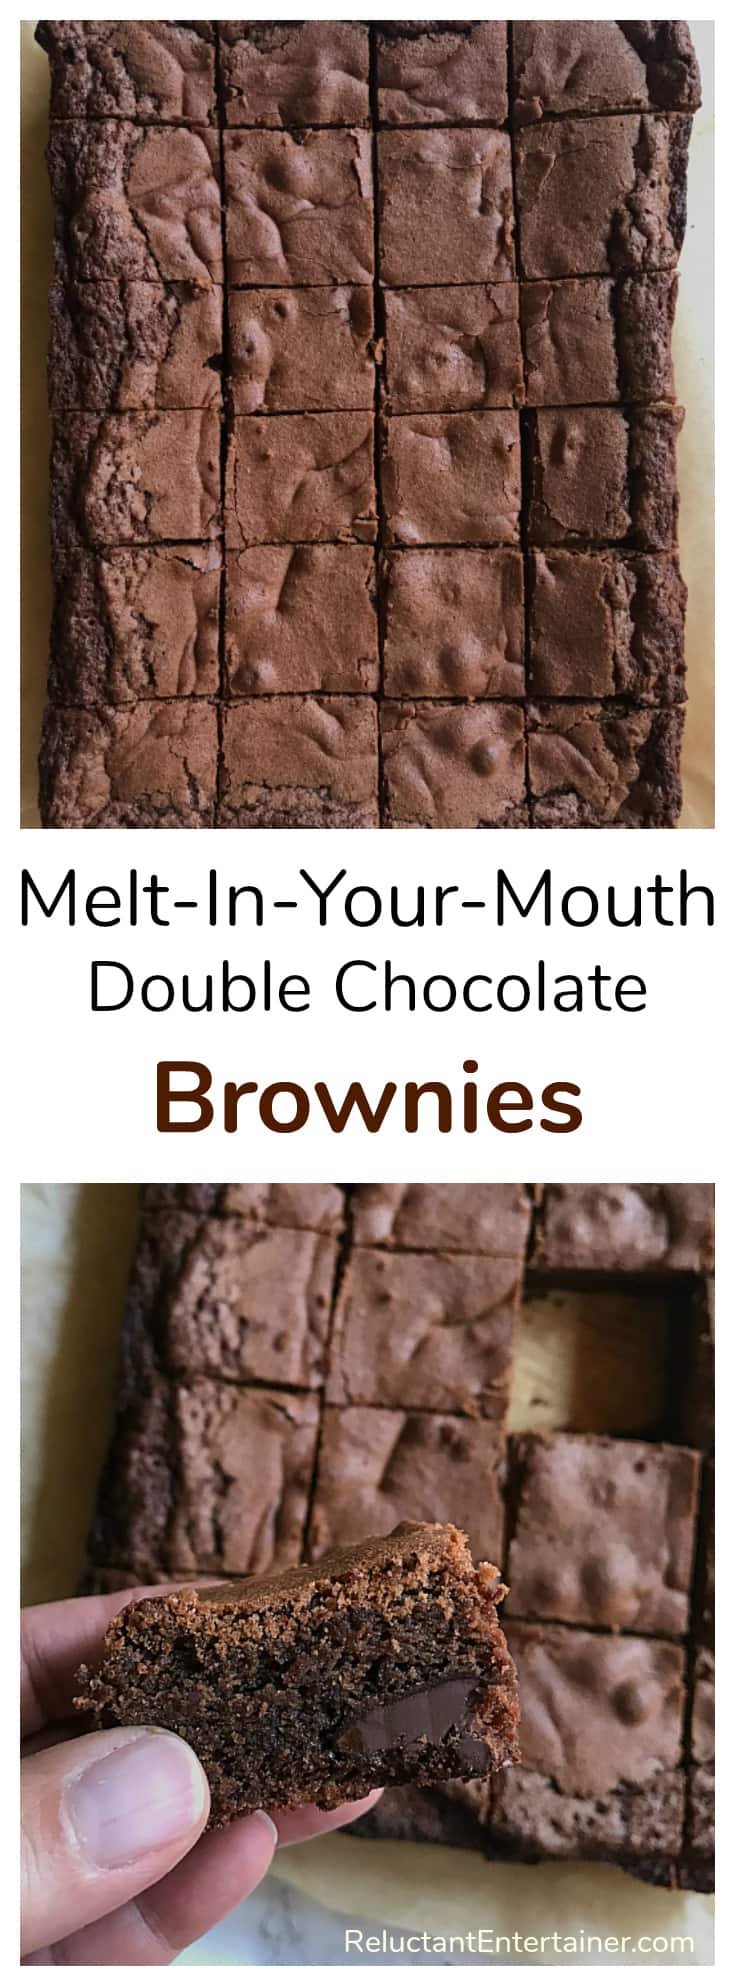 Melt-In-Your-Mouth Double Chocolate Brownie Recipe